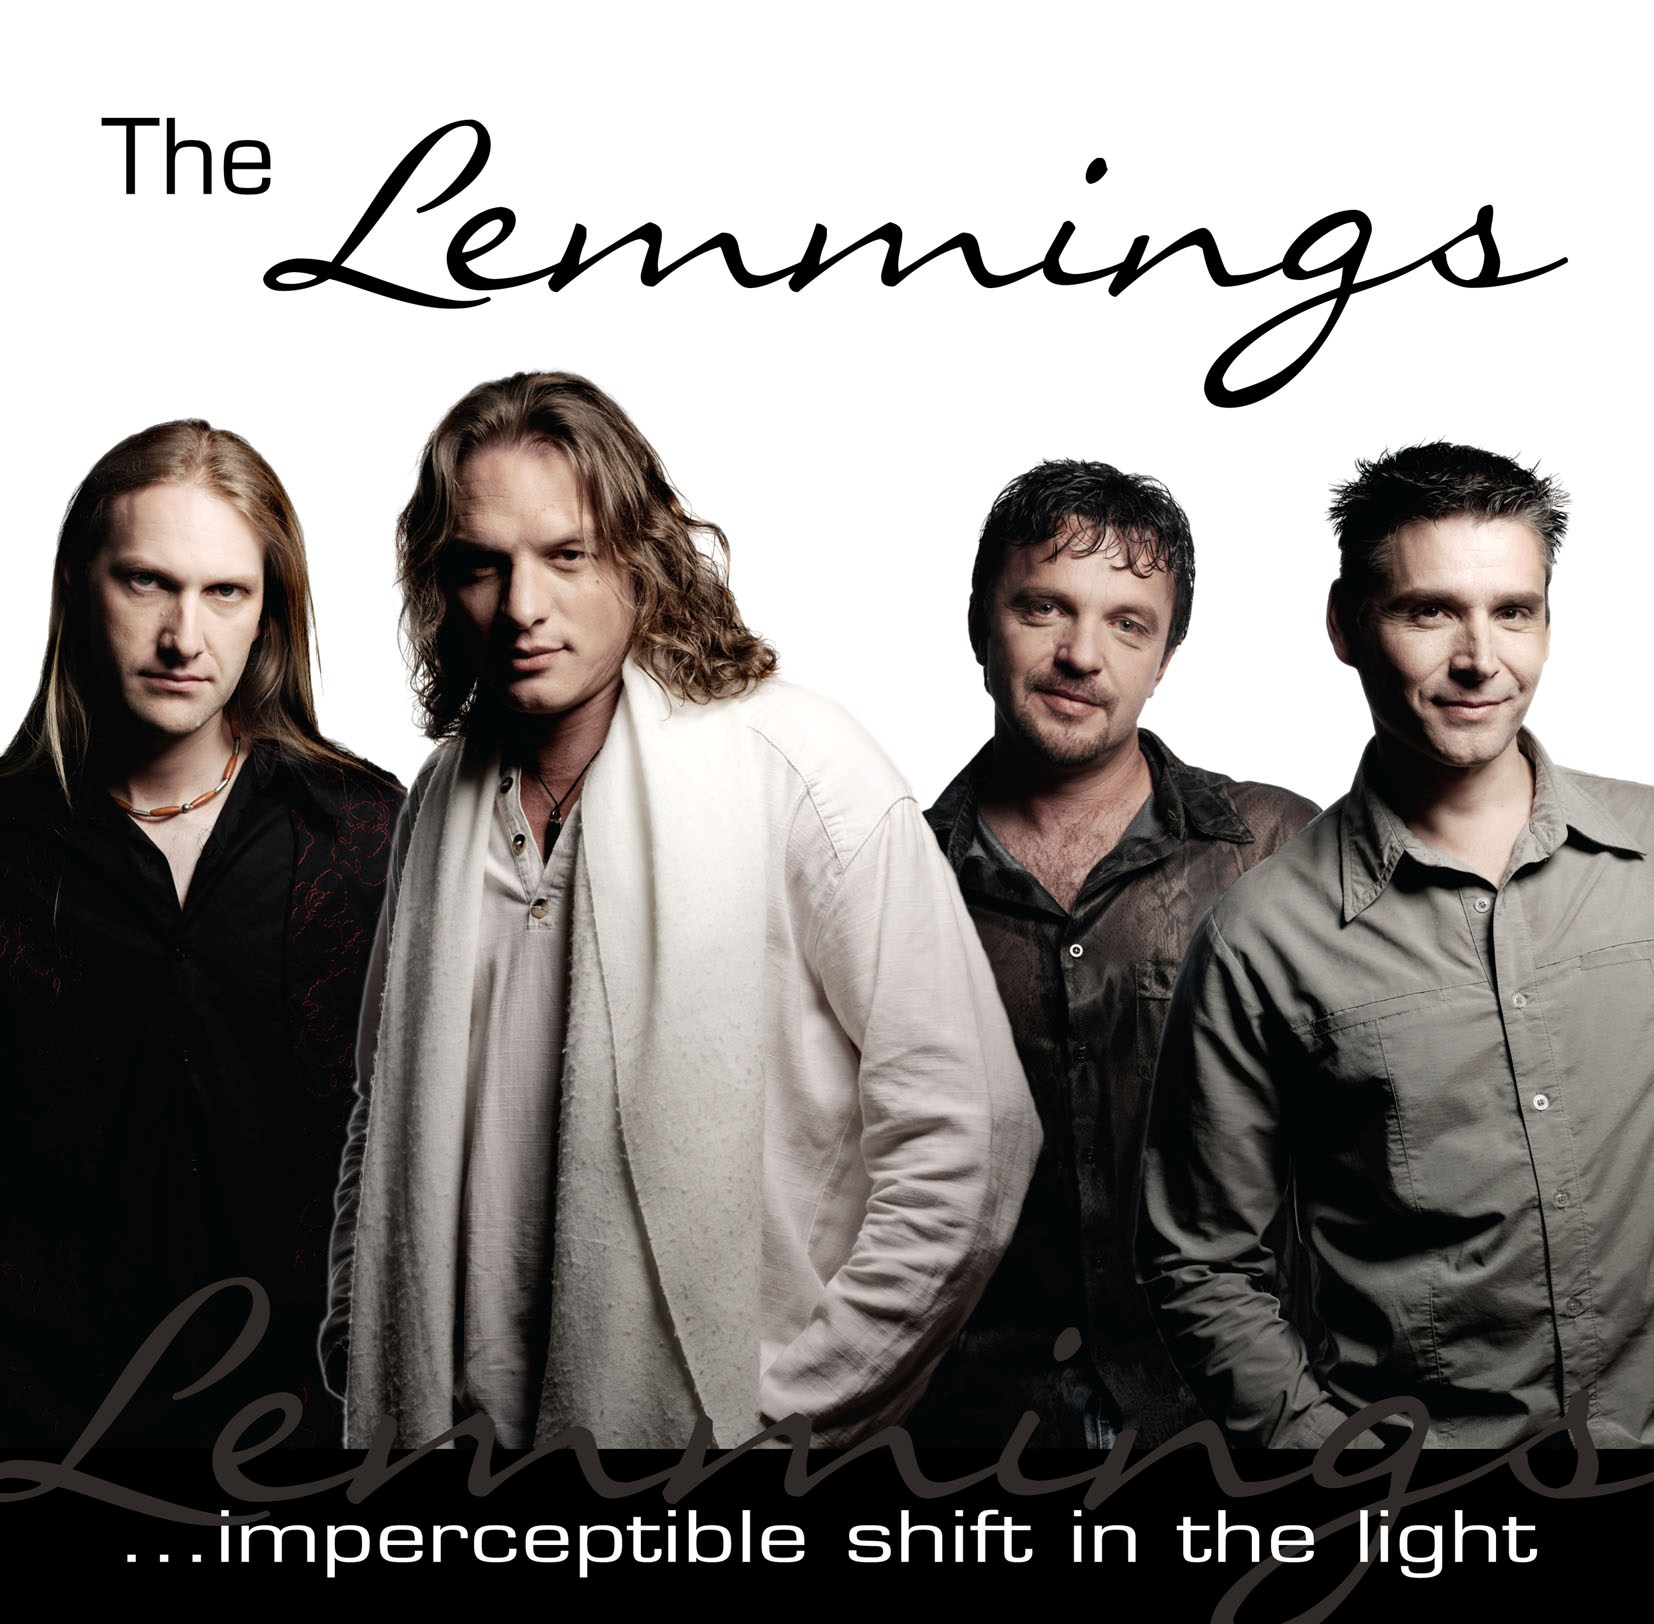 http://indiemusicpeople.com/uploads2/93362_2_19_2008_11_08_22_AM_-_The_Lemmings_CD_Cover.jpg